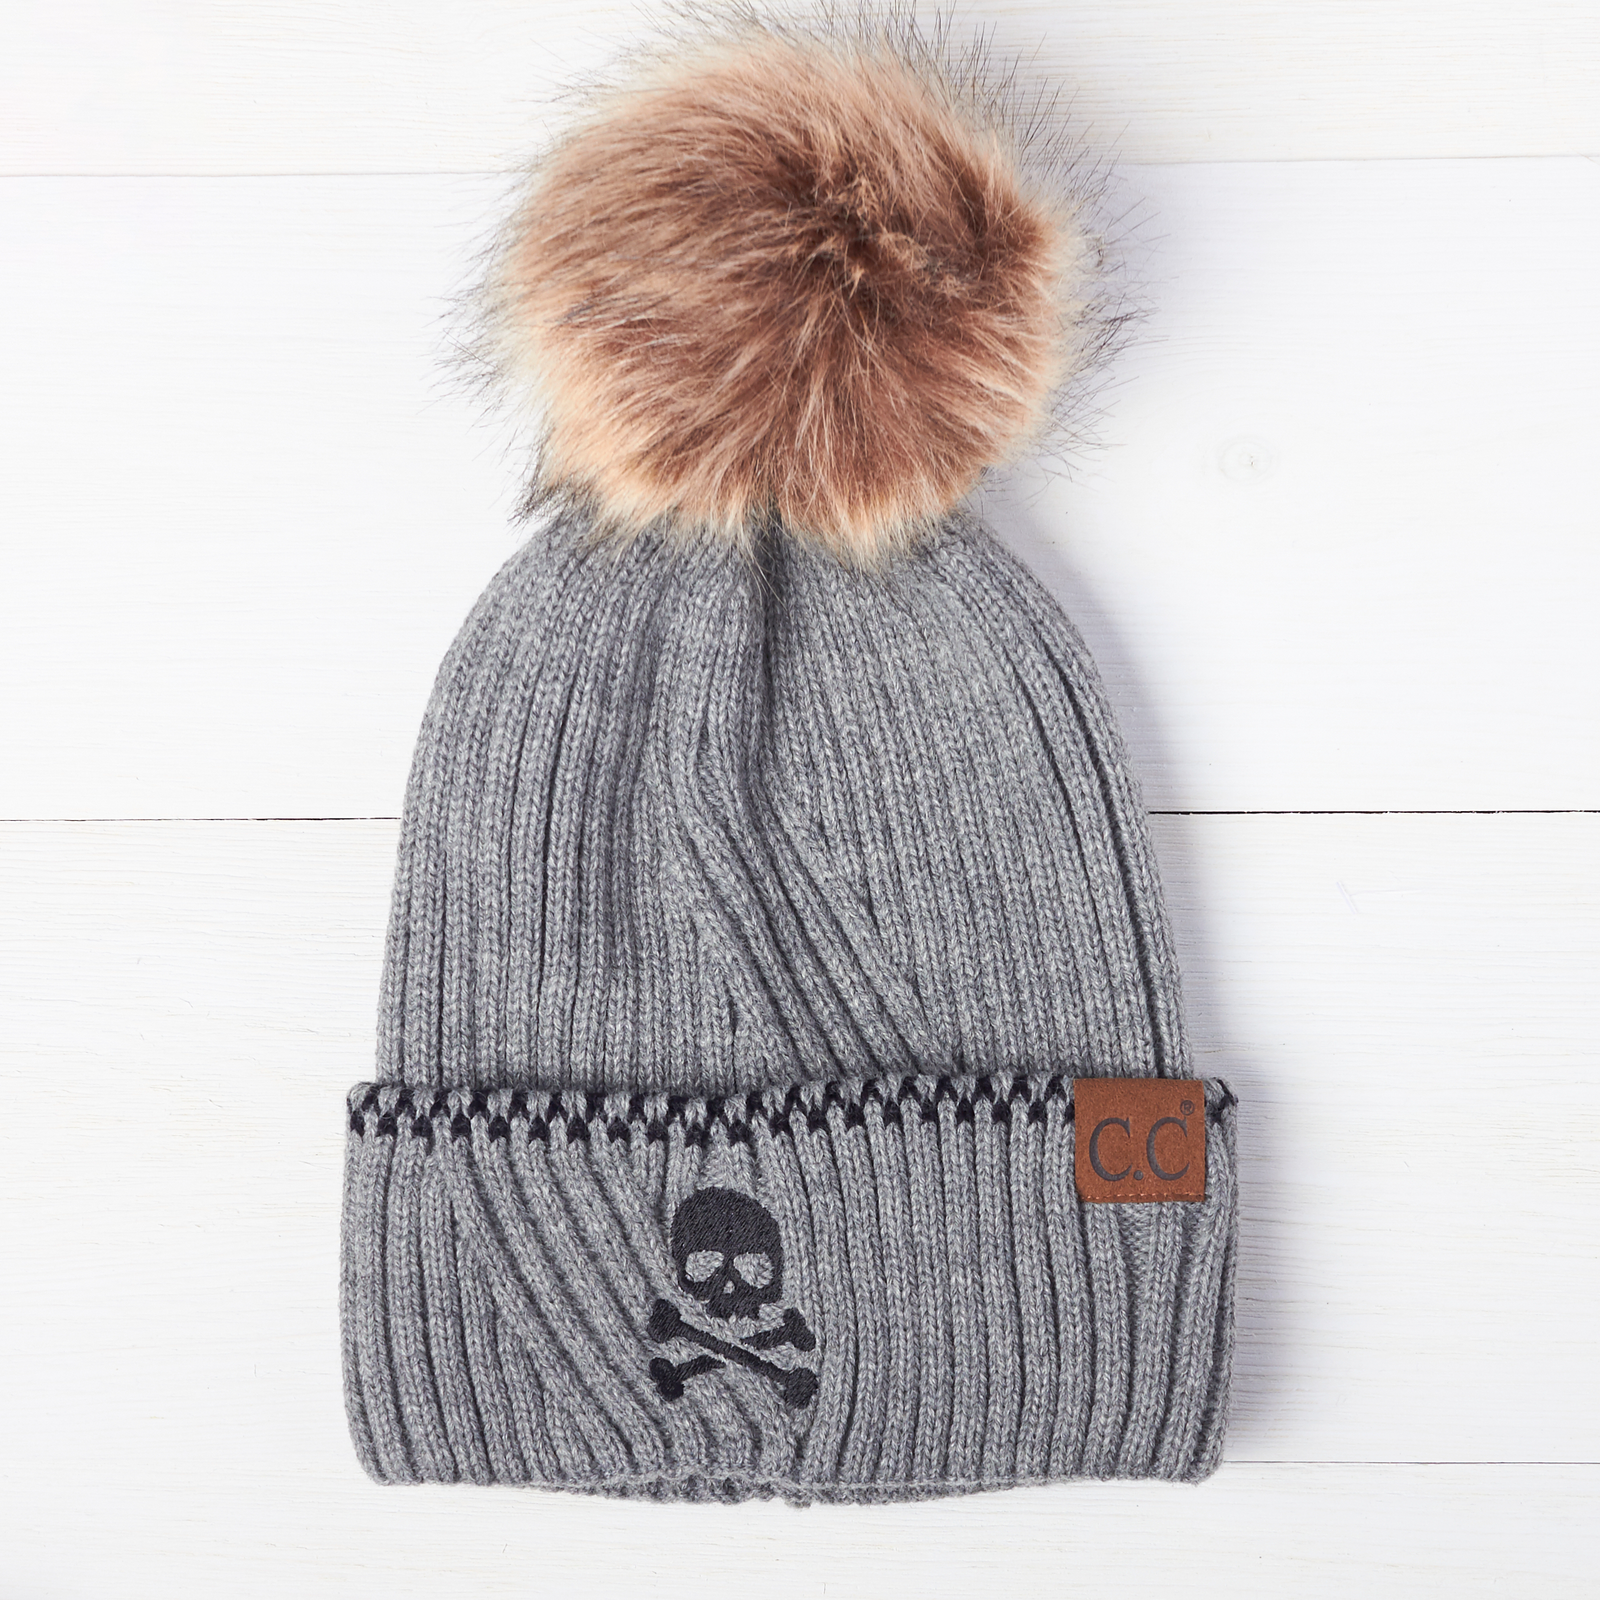 Skull & Crossbones Ribbed Knit Beanie With Accented Cuff